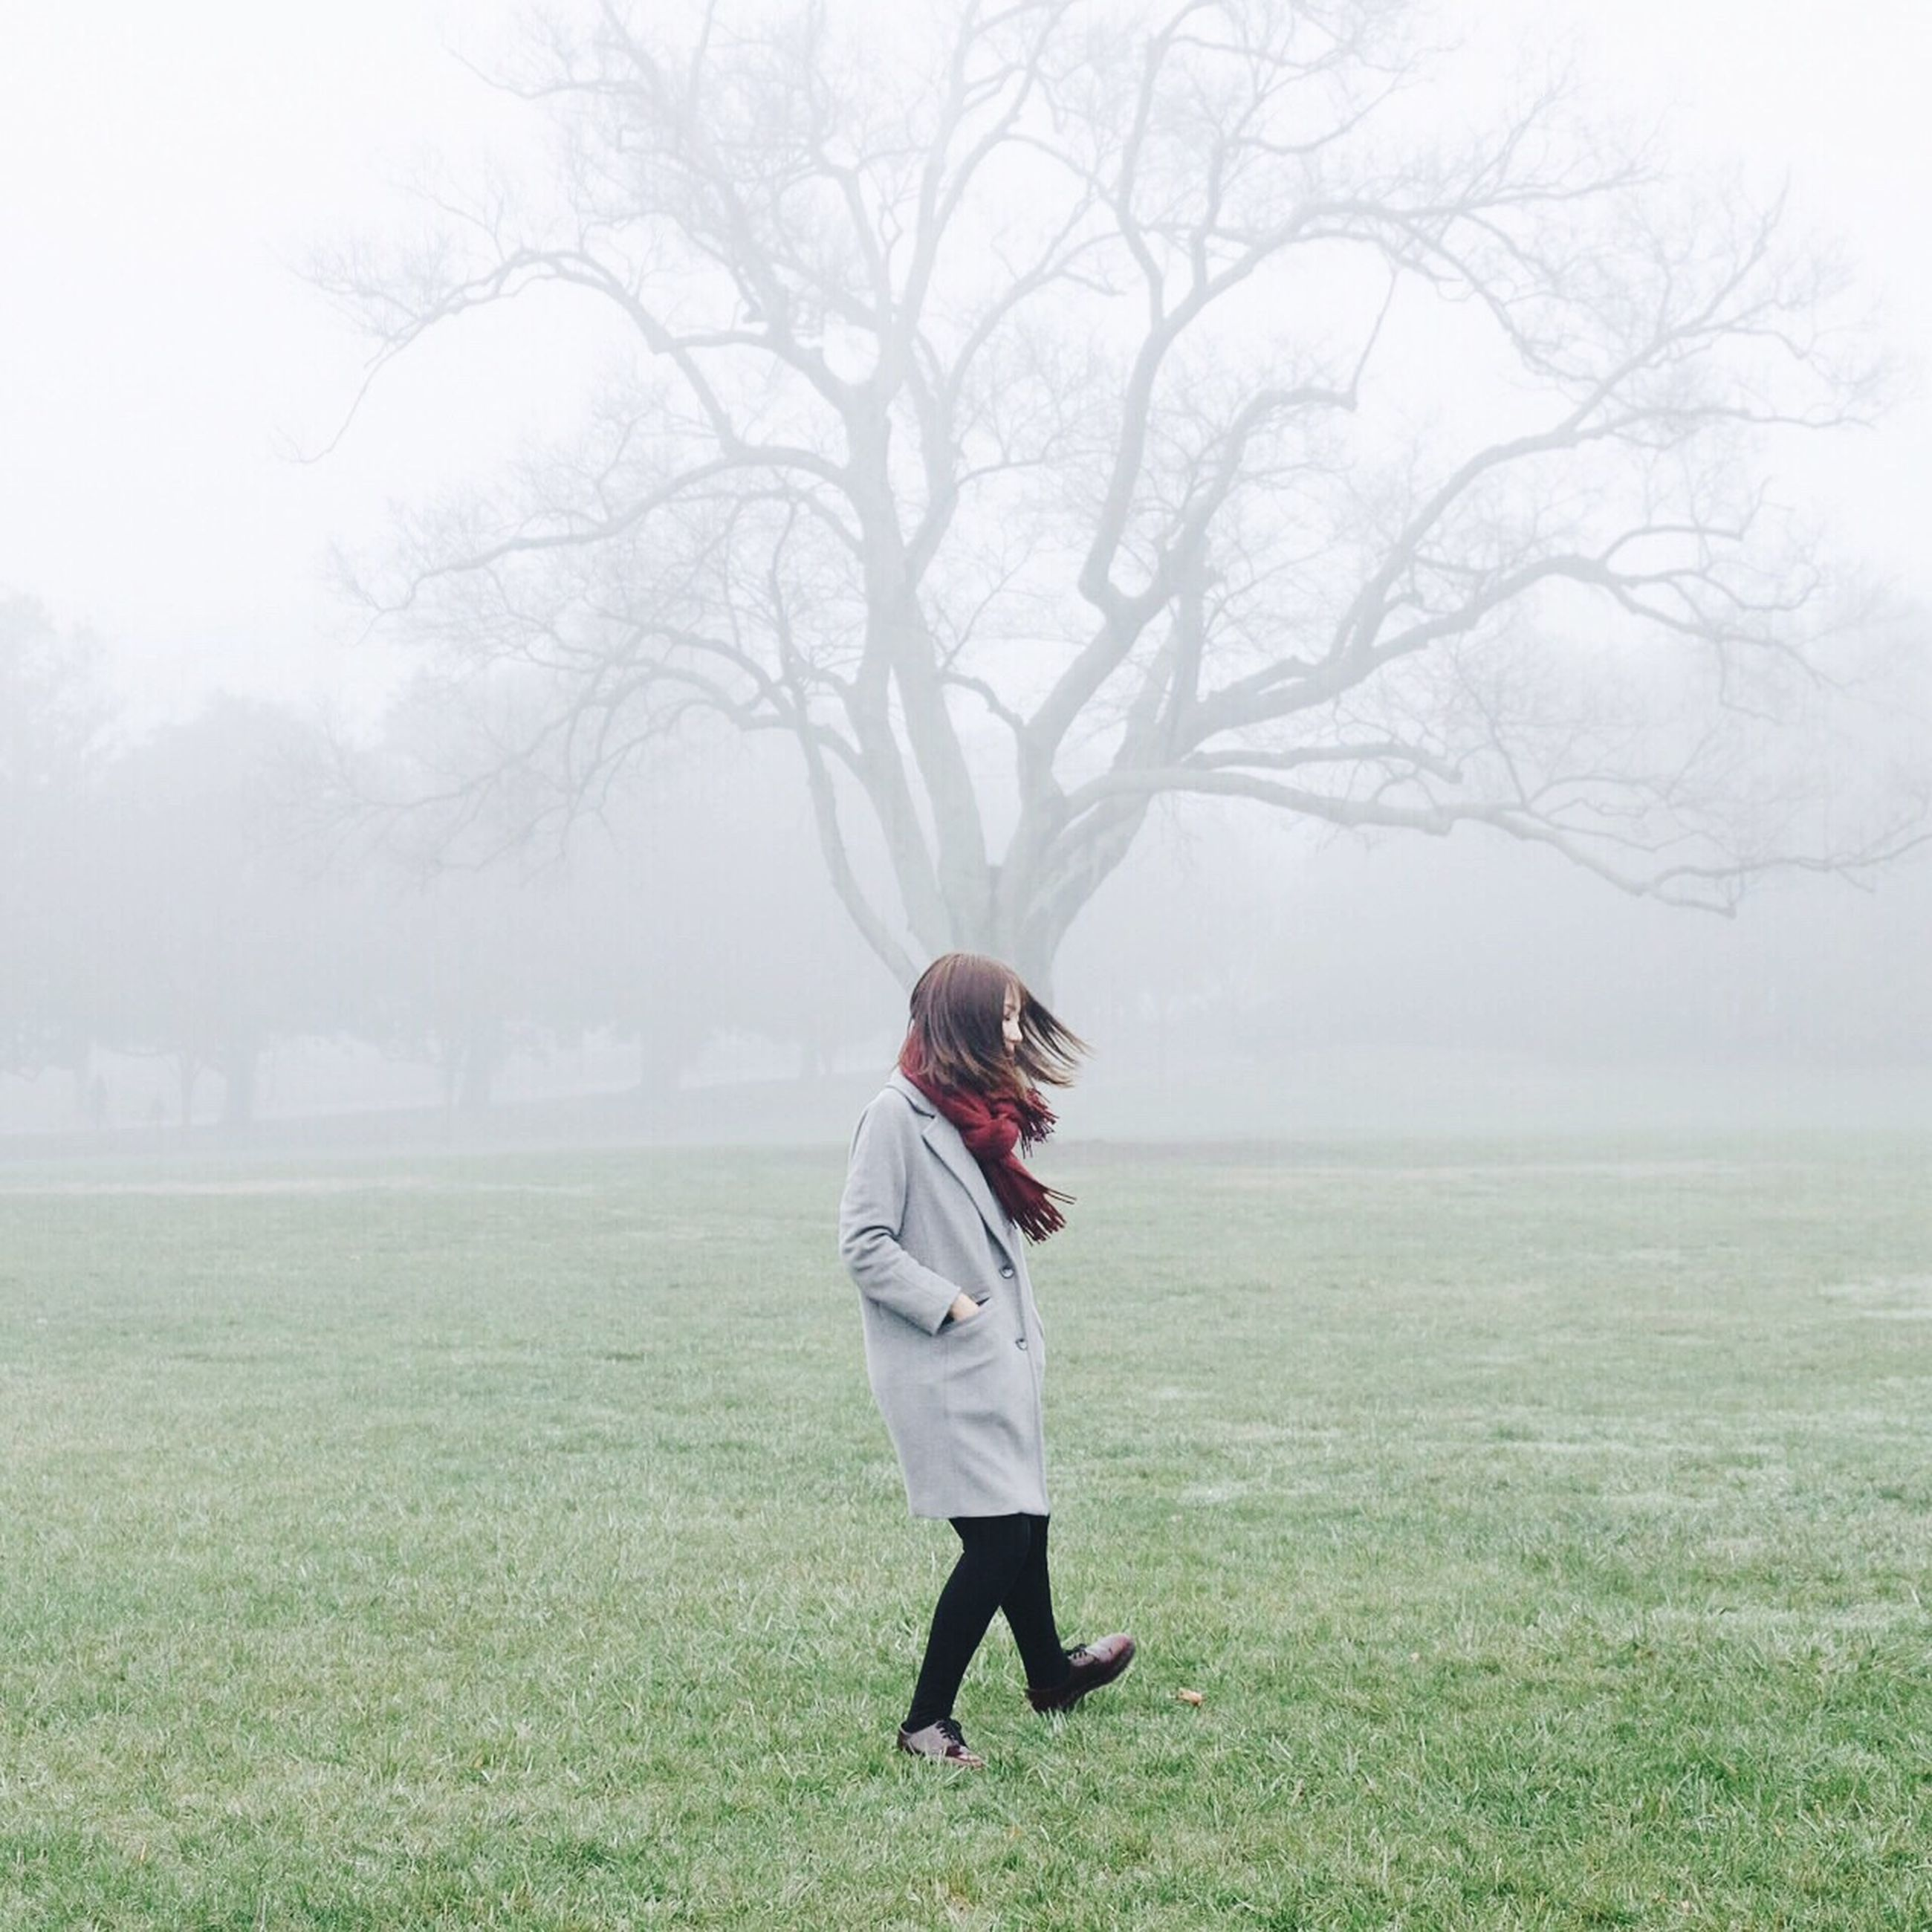 full length, tree, lifestyles, leisure activity, rear view, grass, field, casual clothing, nature, standing, tranquil scene, tranquility, beauty in nature, day, growth, walking, landscape, outdoors